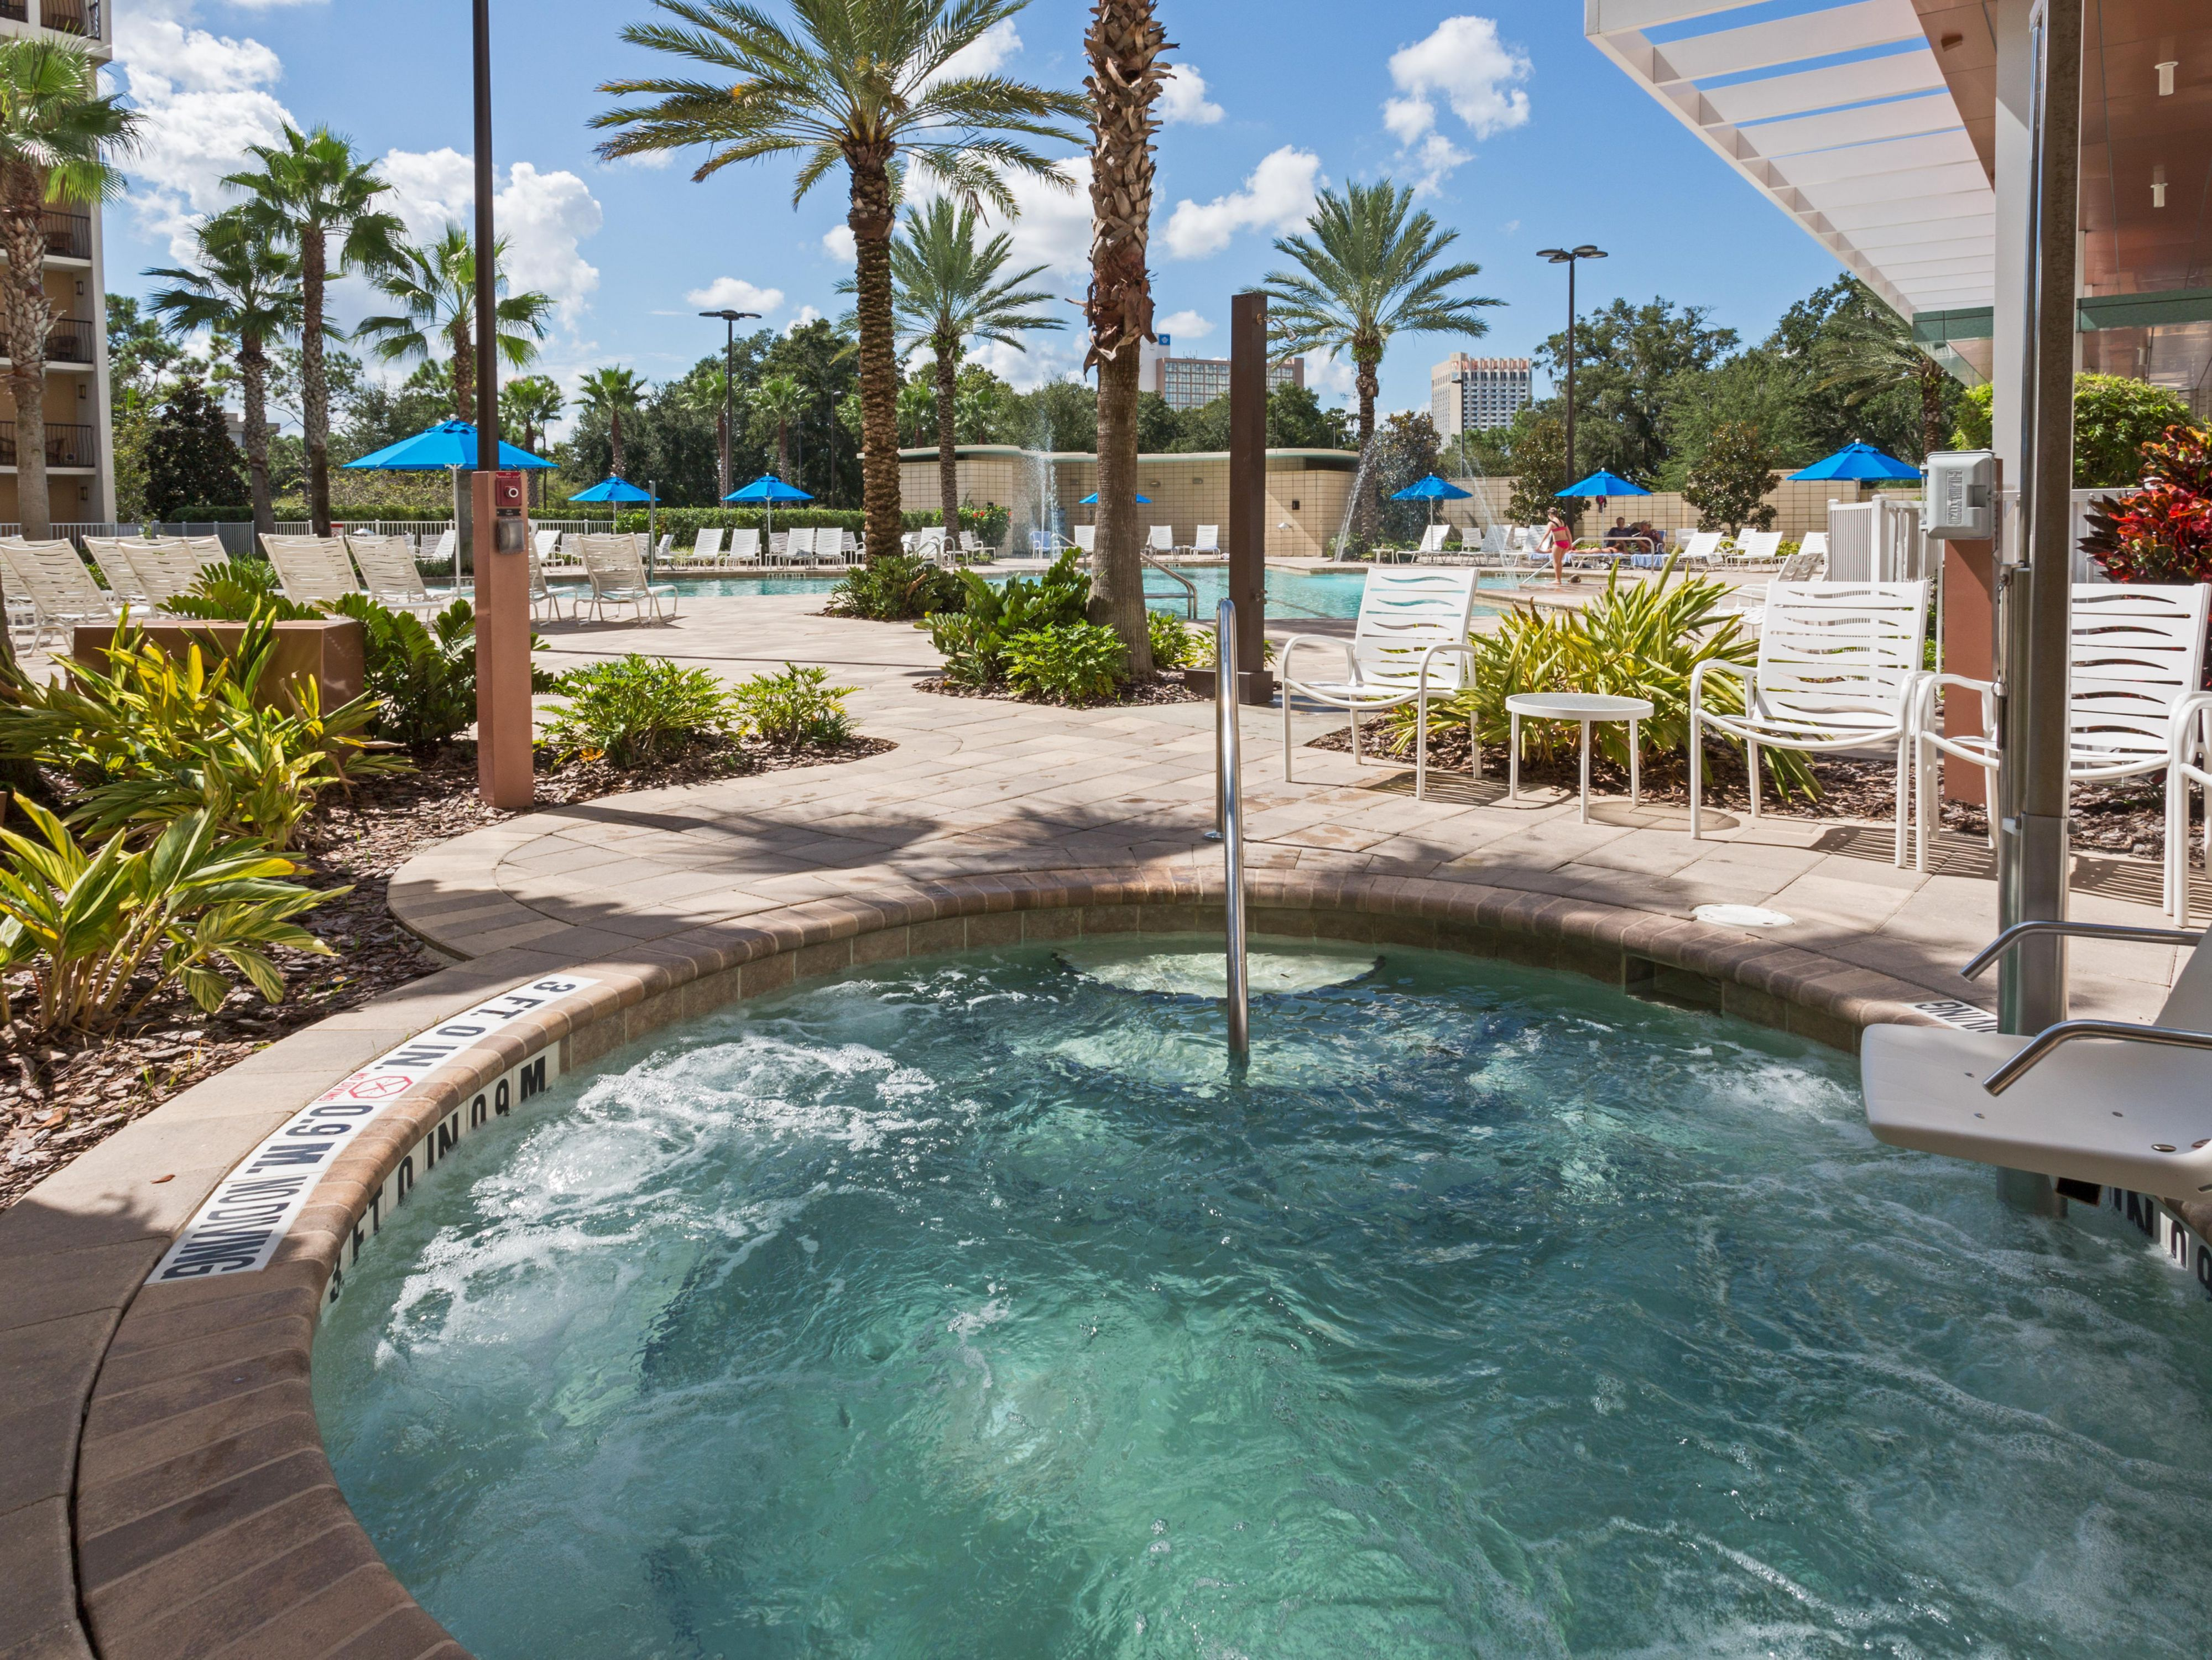 Relax in our comfortable whirlpool after the parks